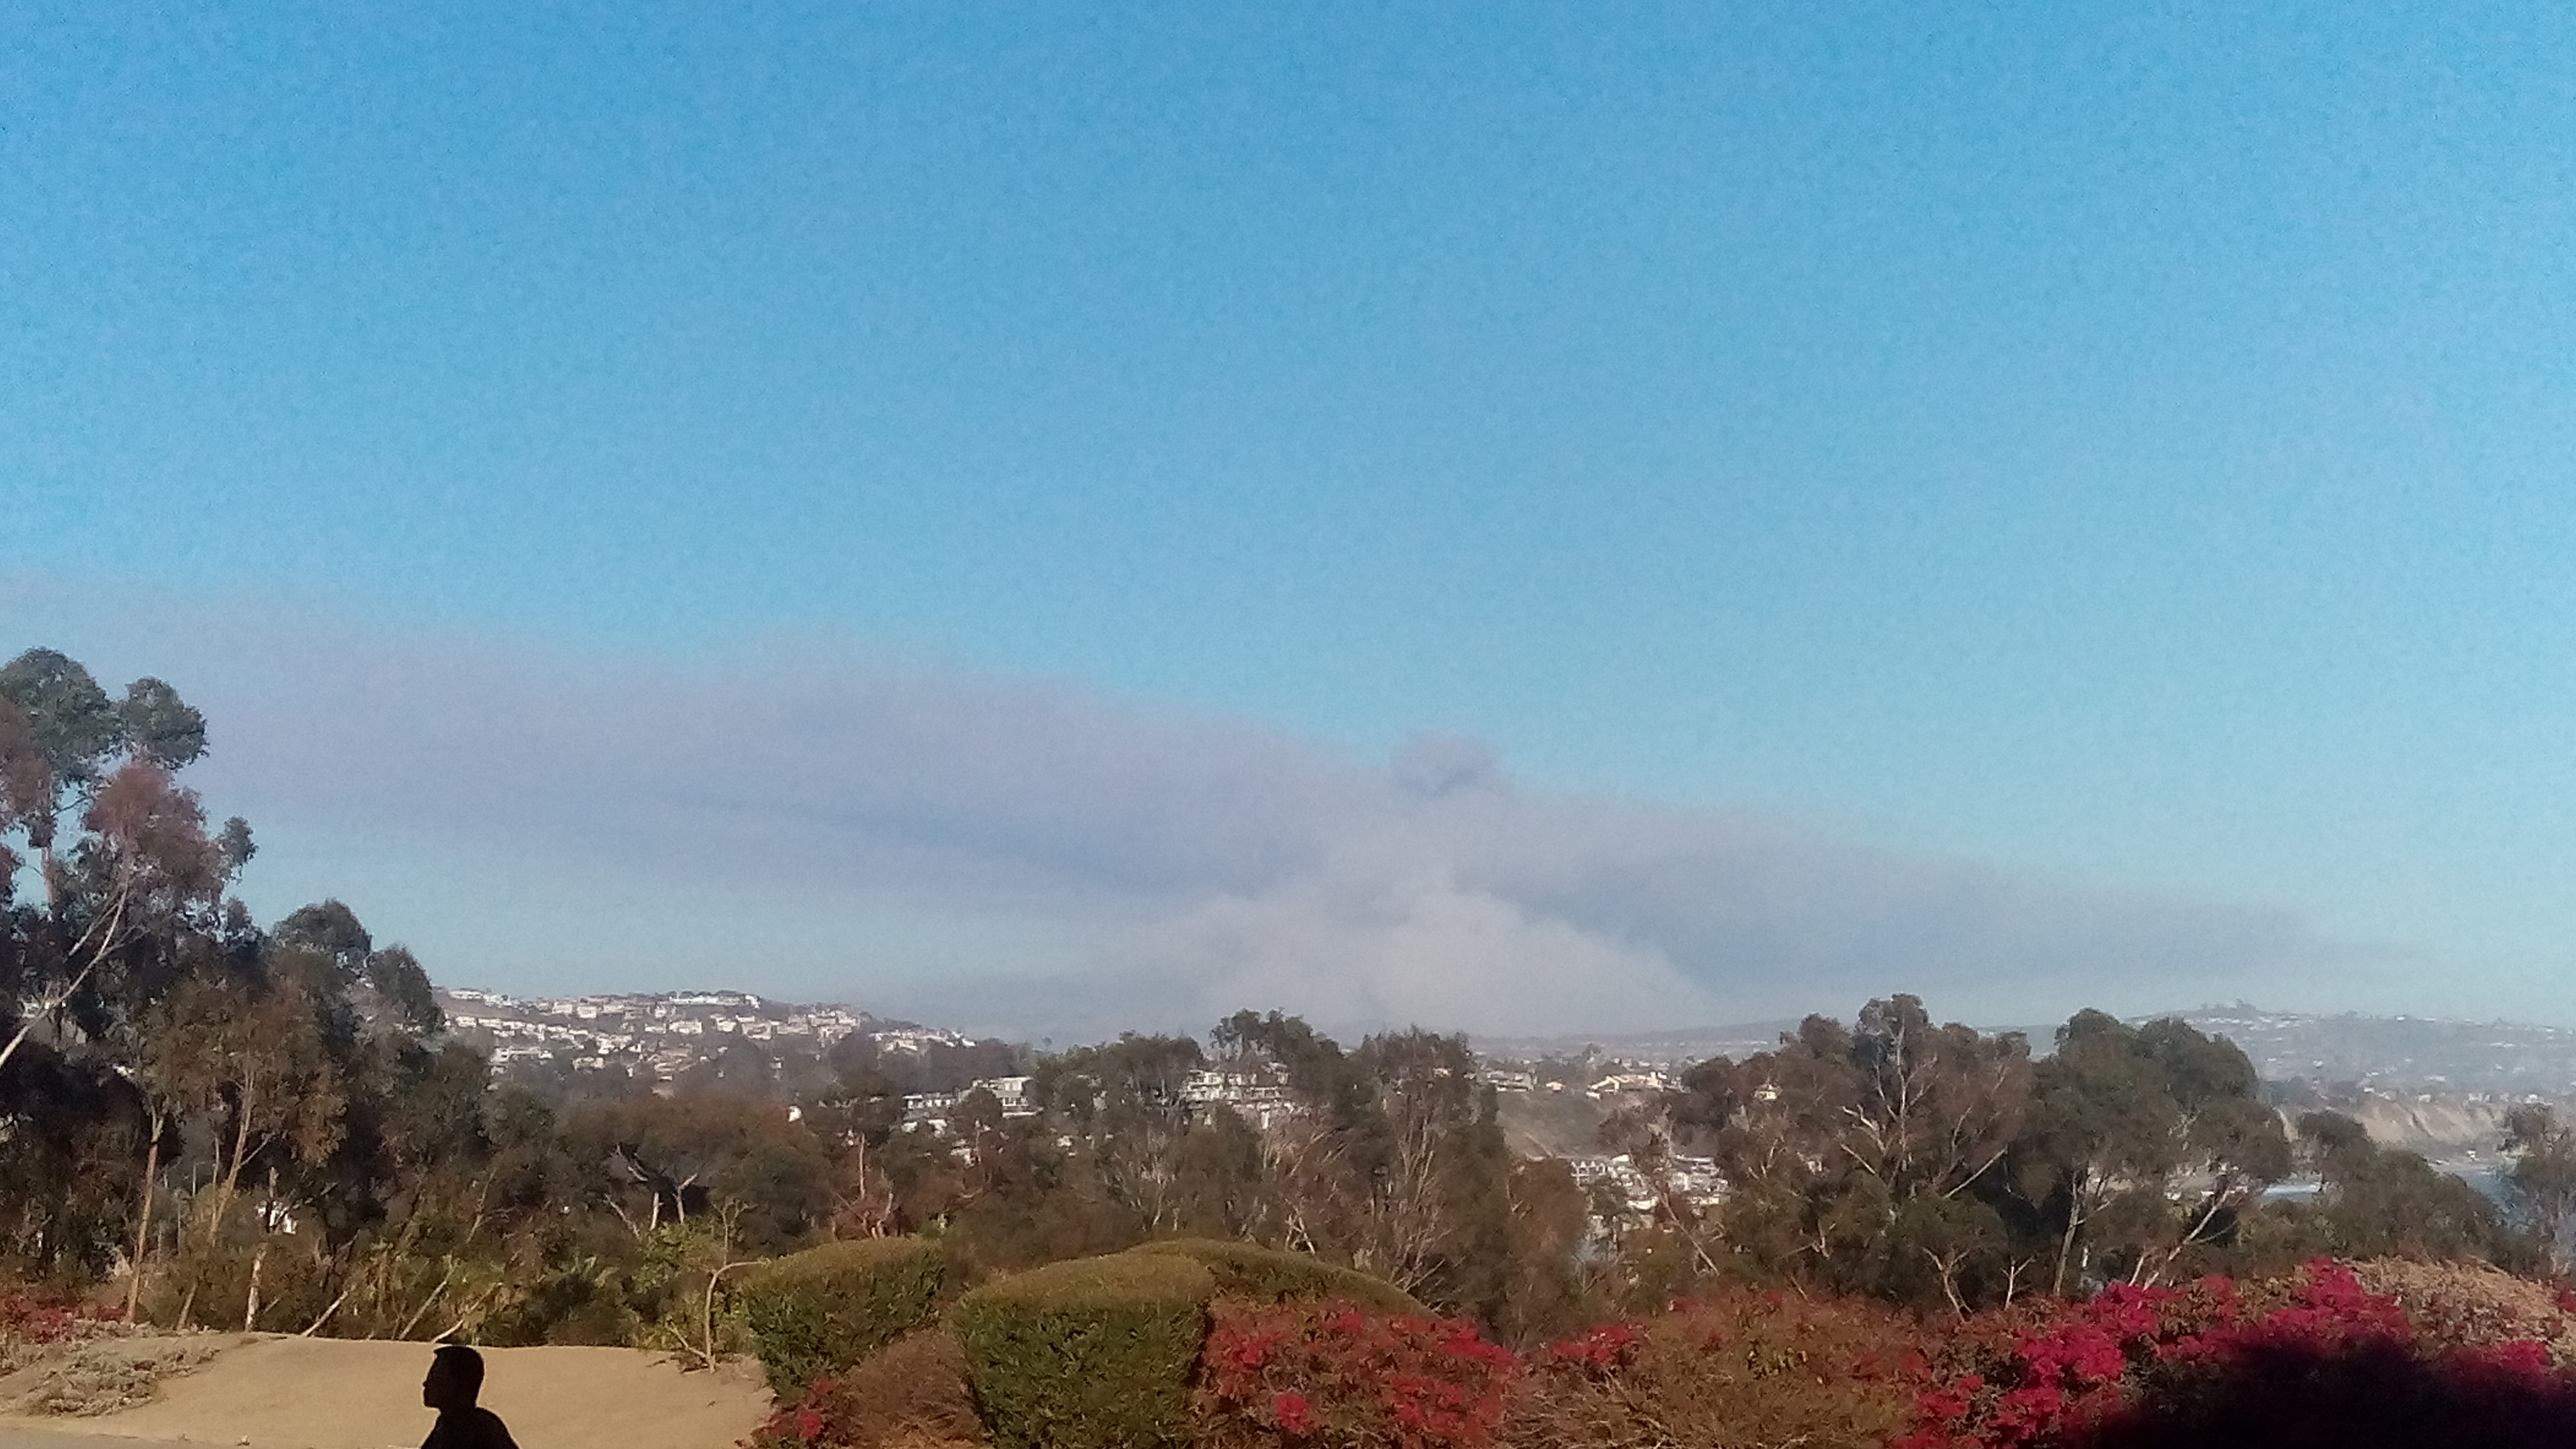 Oceanside Fire Update >> Where there's Smoke-Robler Fire at Camp Pendleton--Latest Update for San Clemente - San Clemente ...